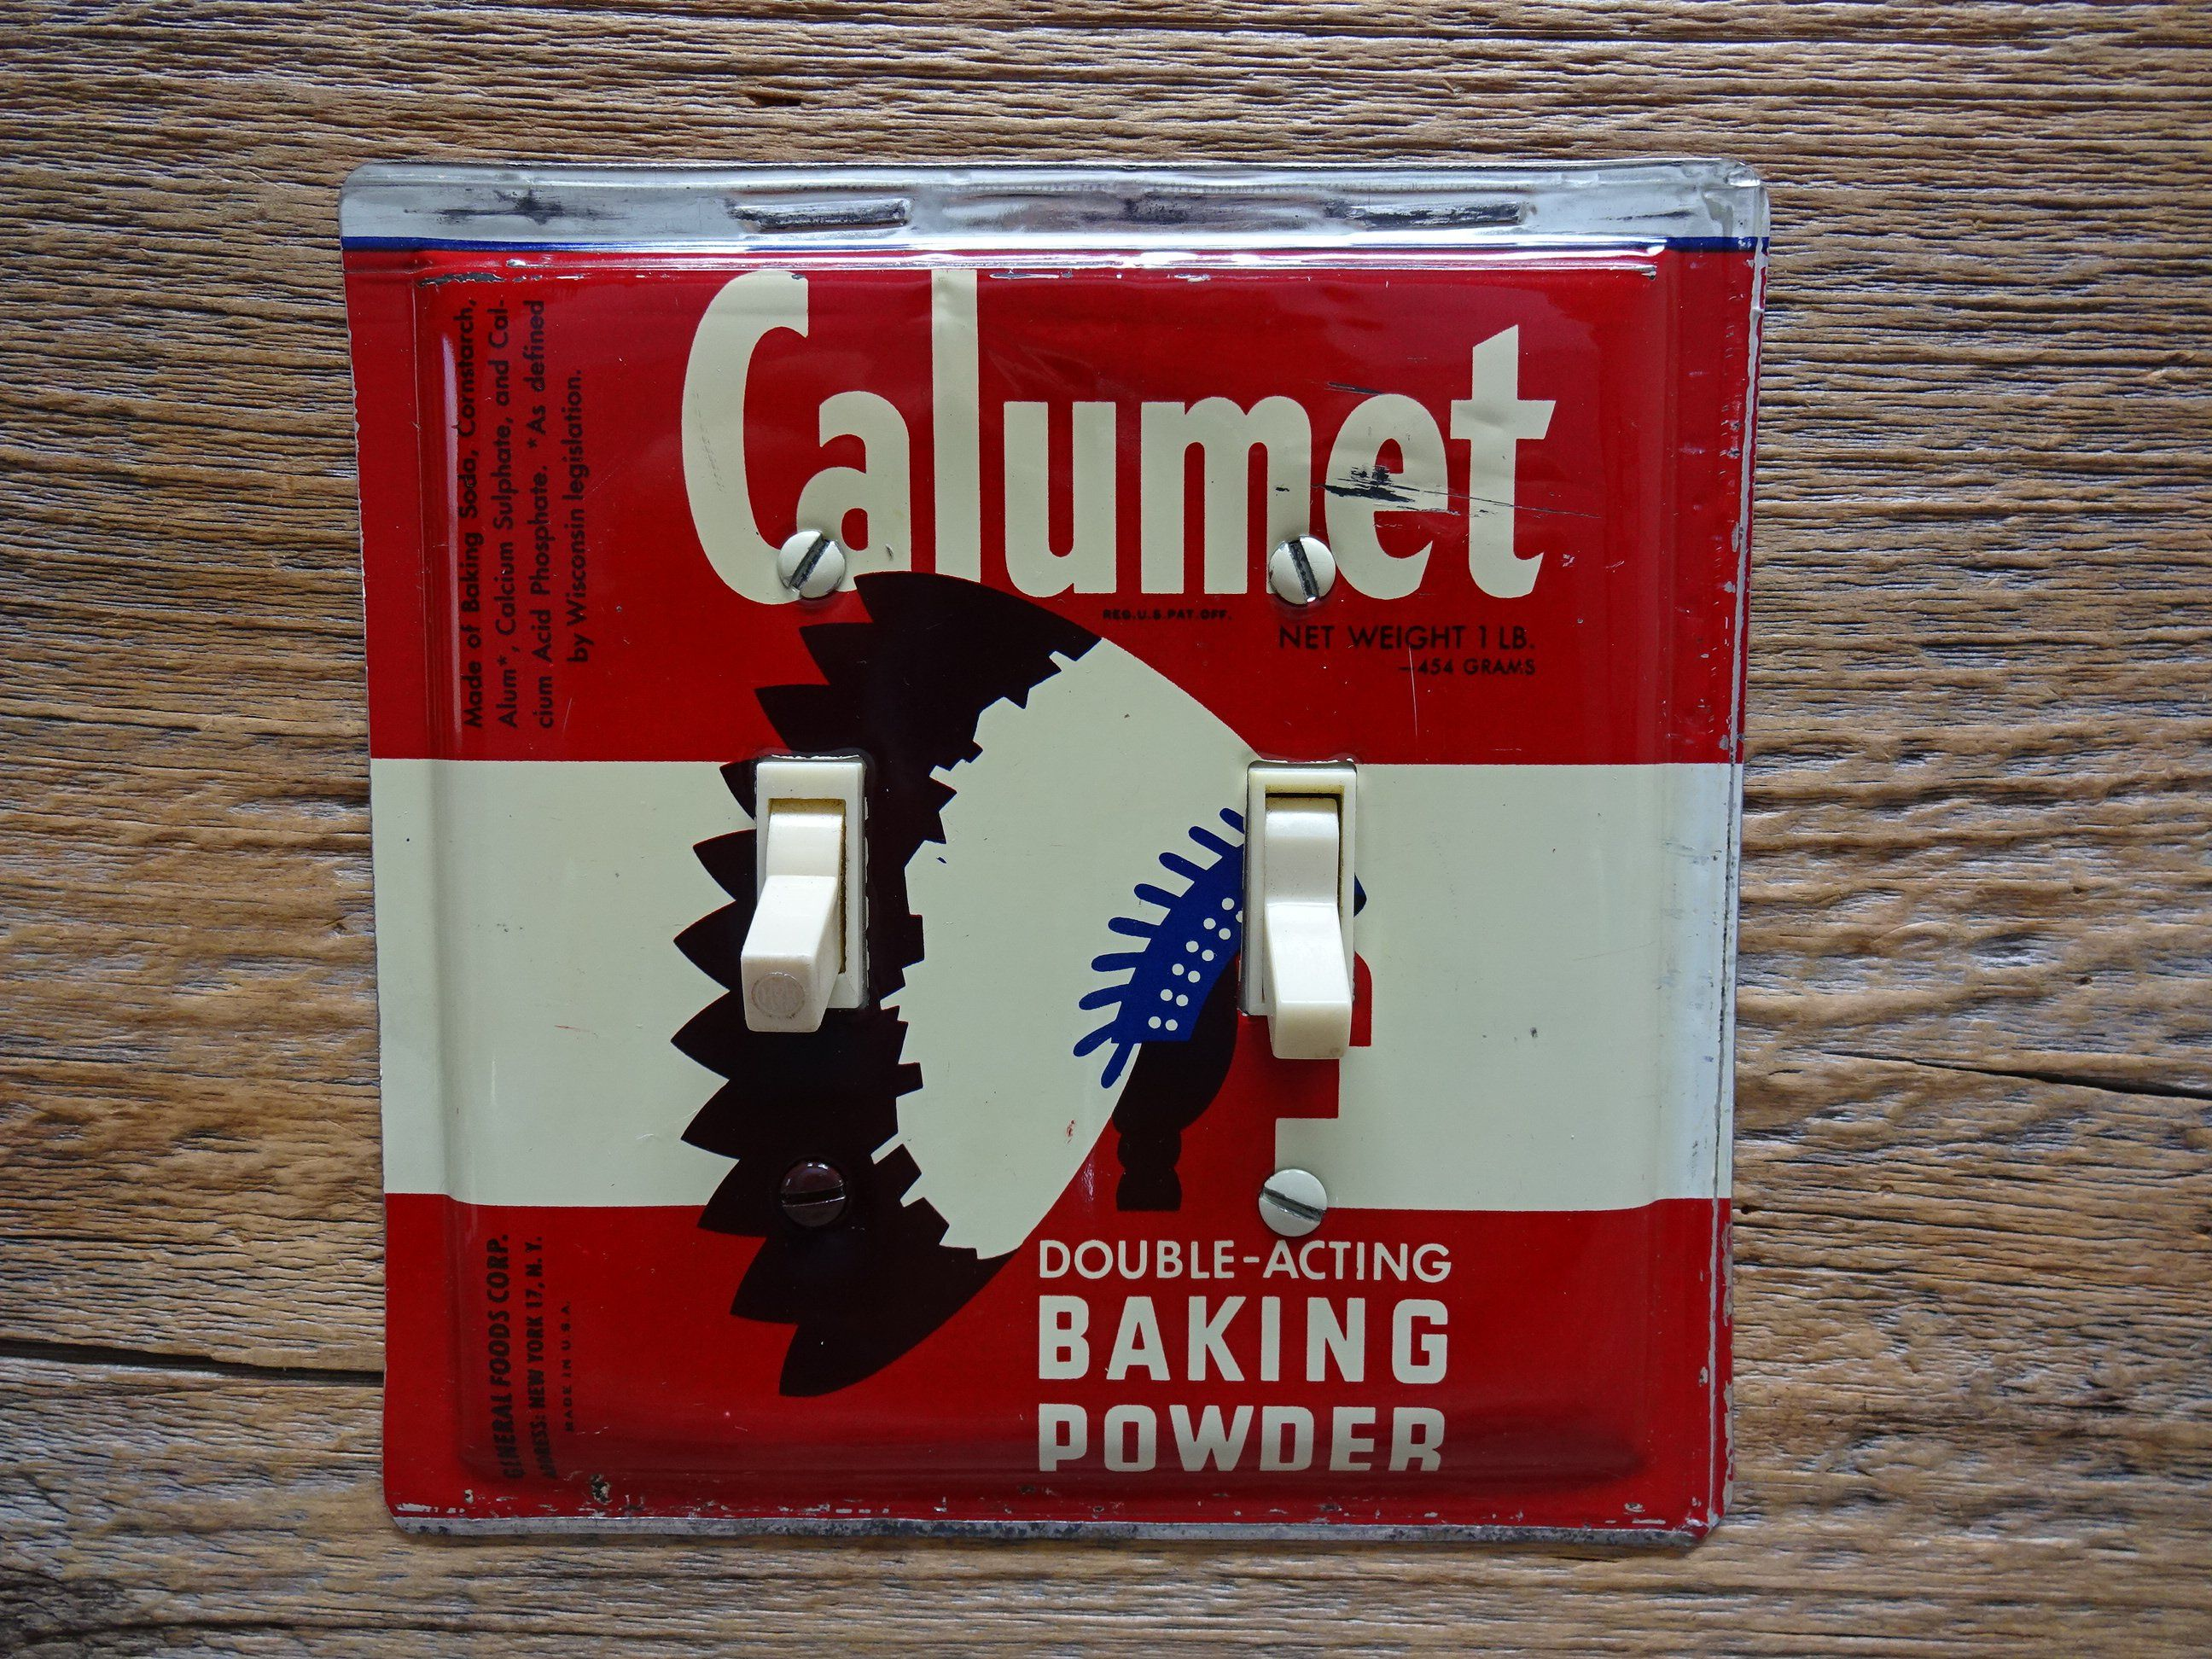 Vintage Calumet Baking Powder Tin Switch Plate Made From